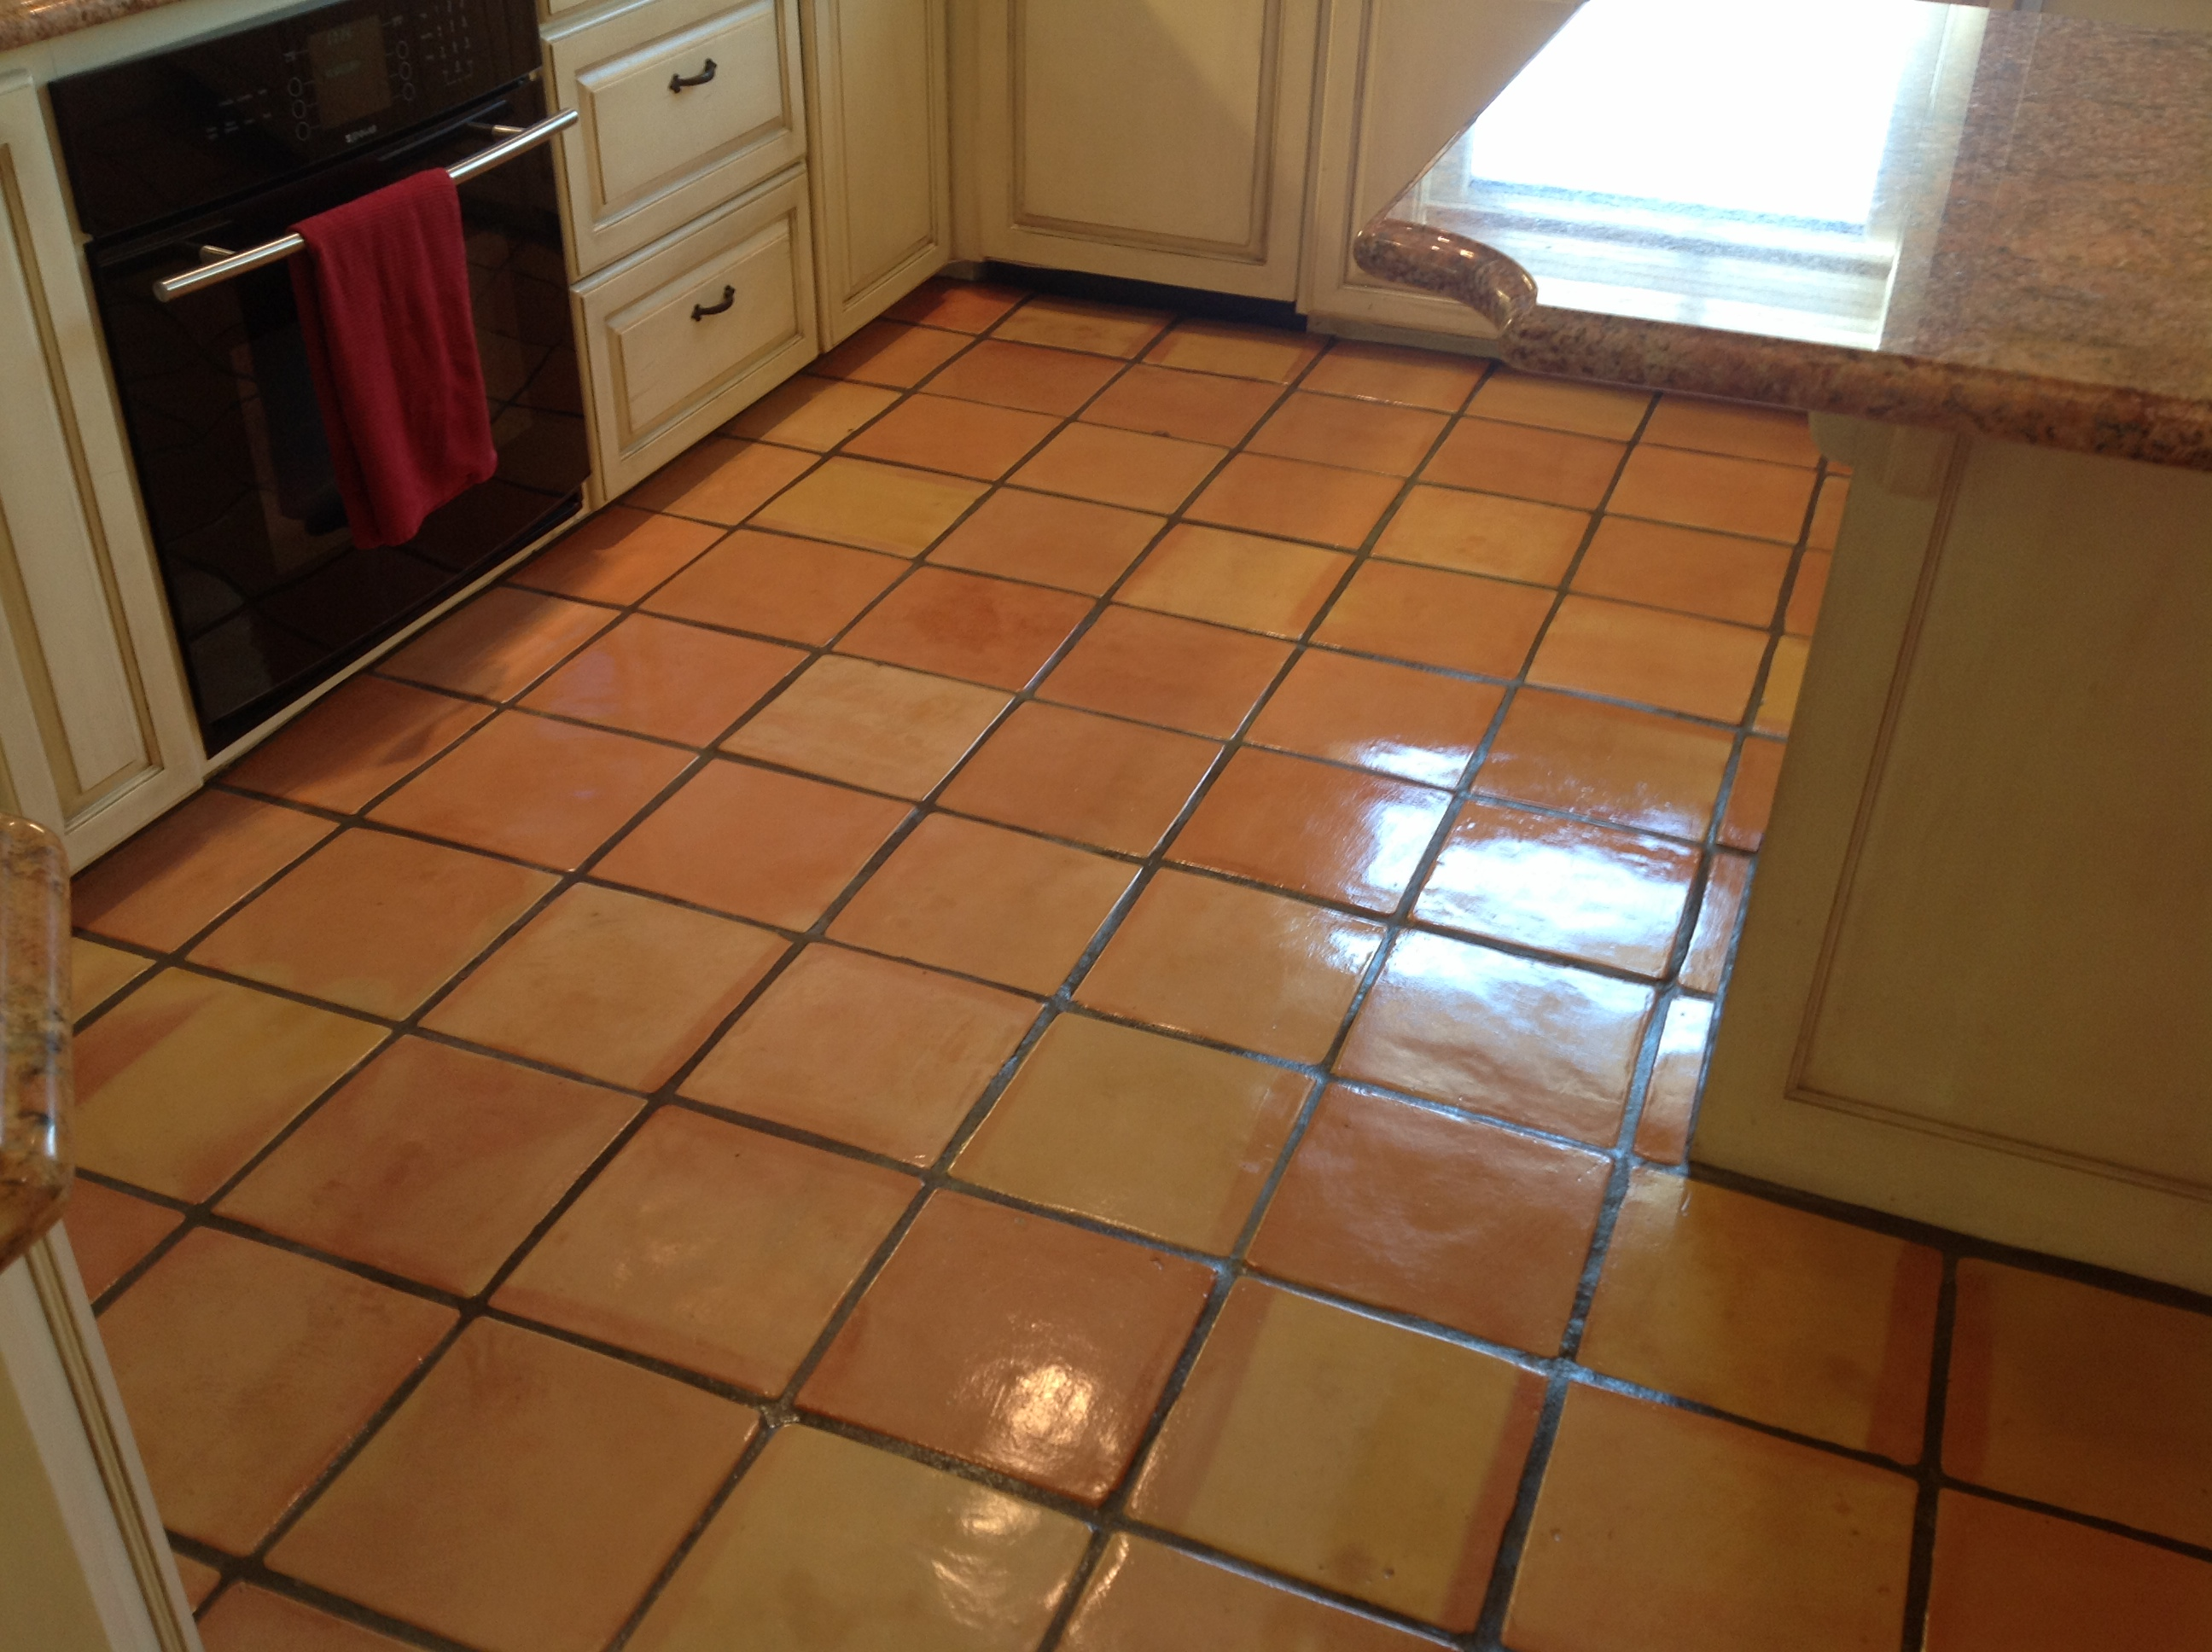 mexican tile floors home depot kitchen flooring Lovely Cleaning Mexican Tile Miami Home